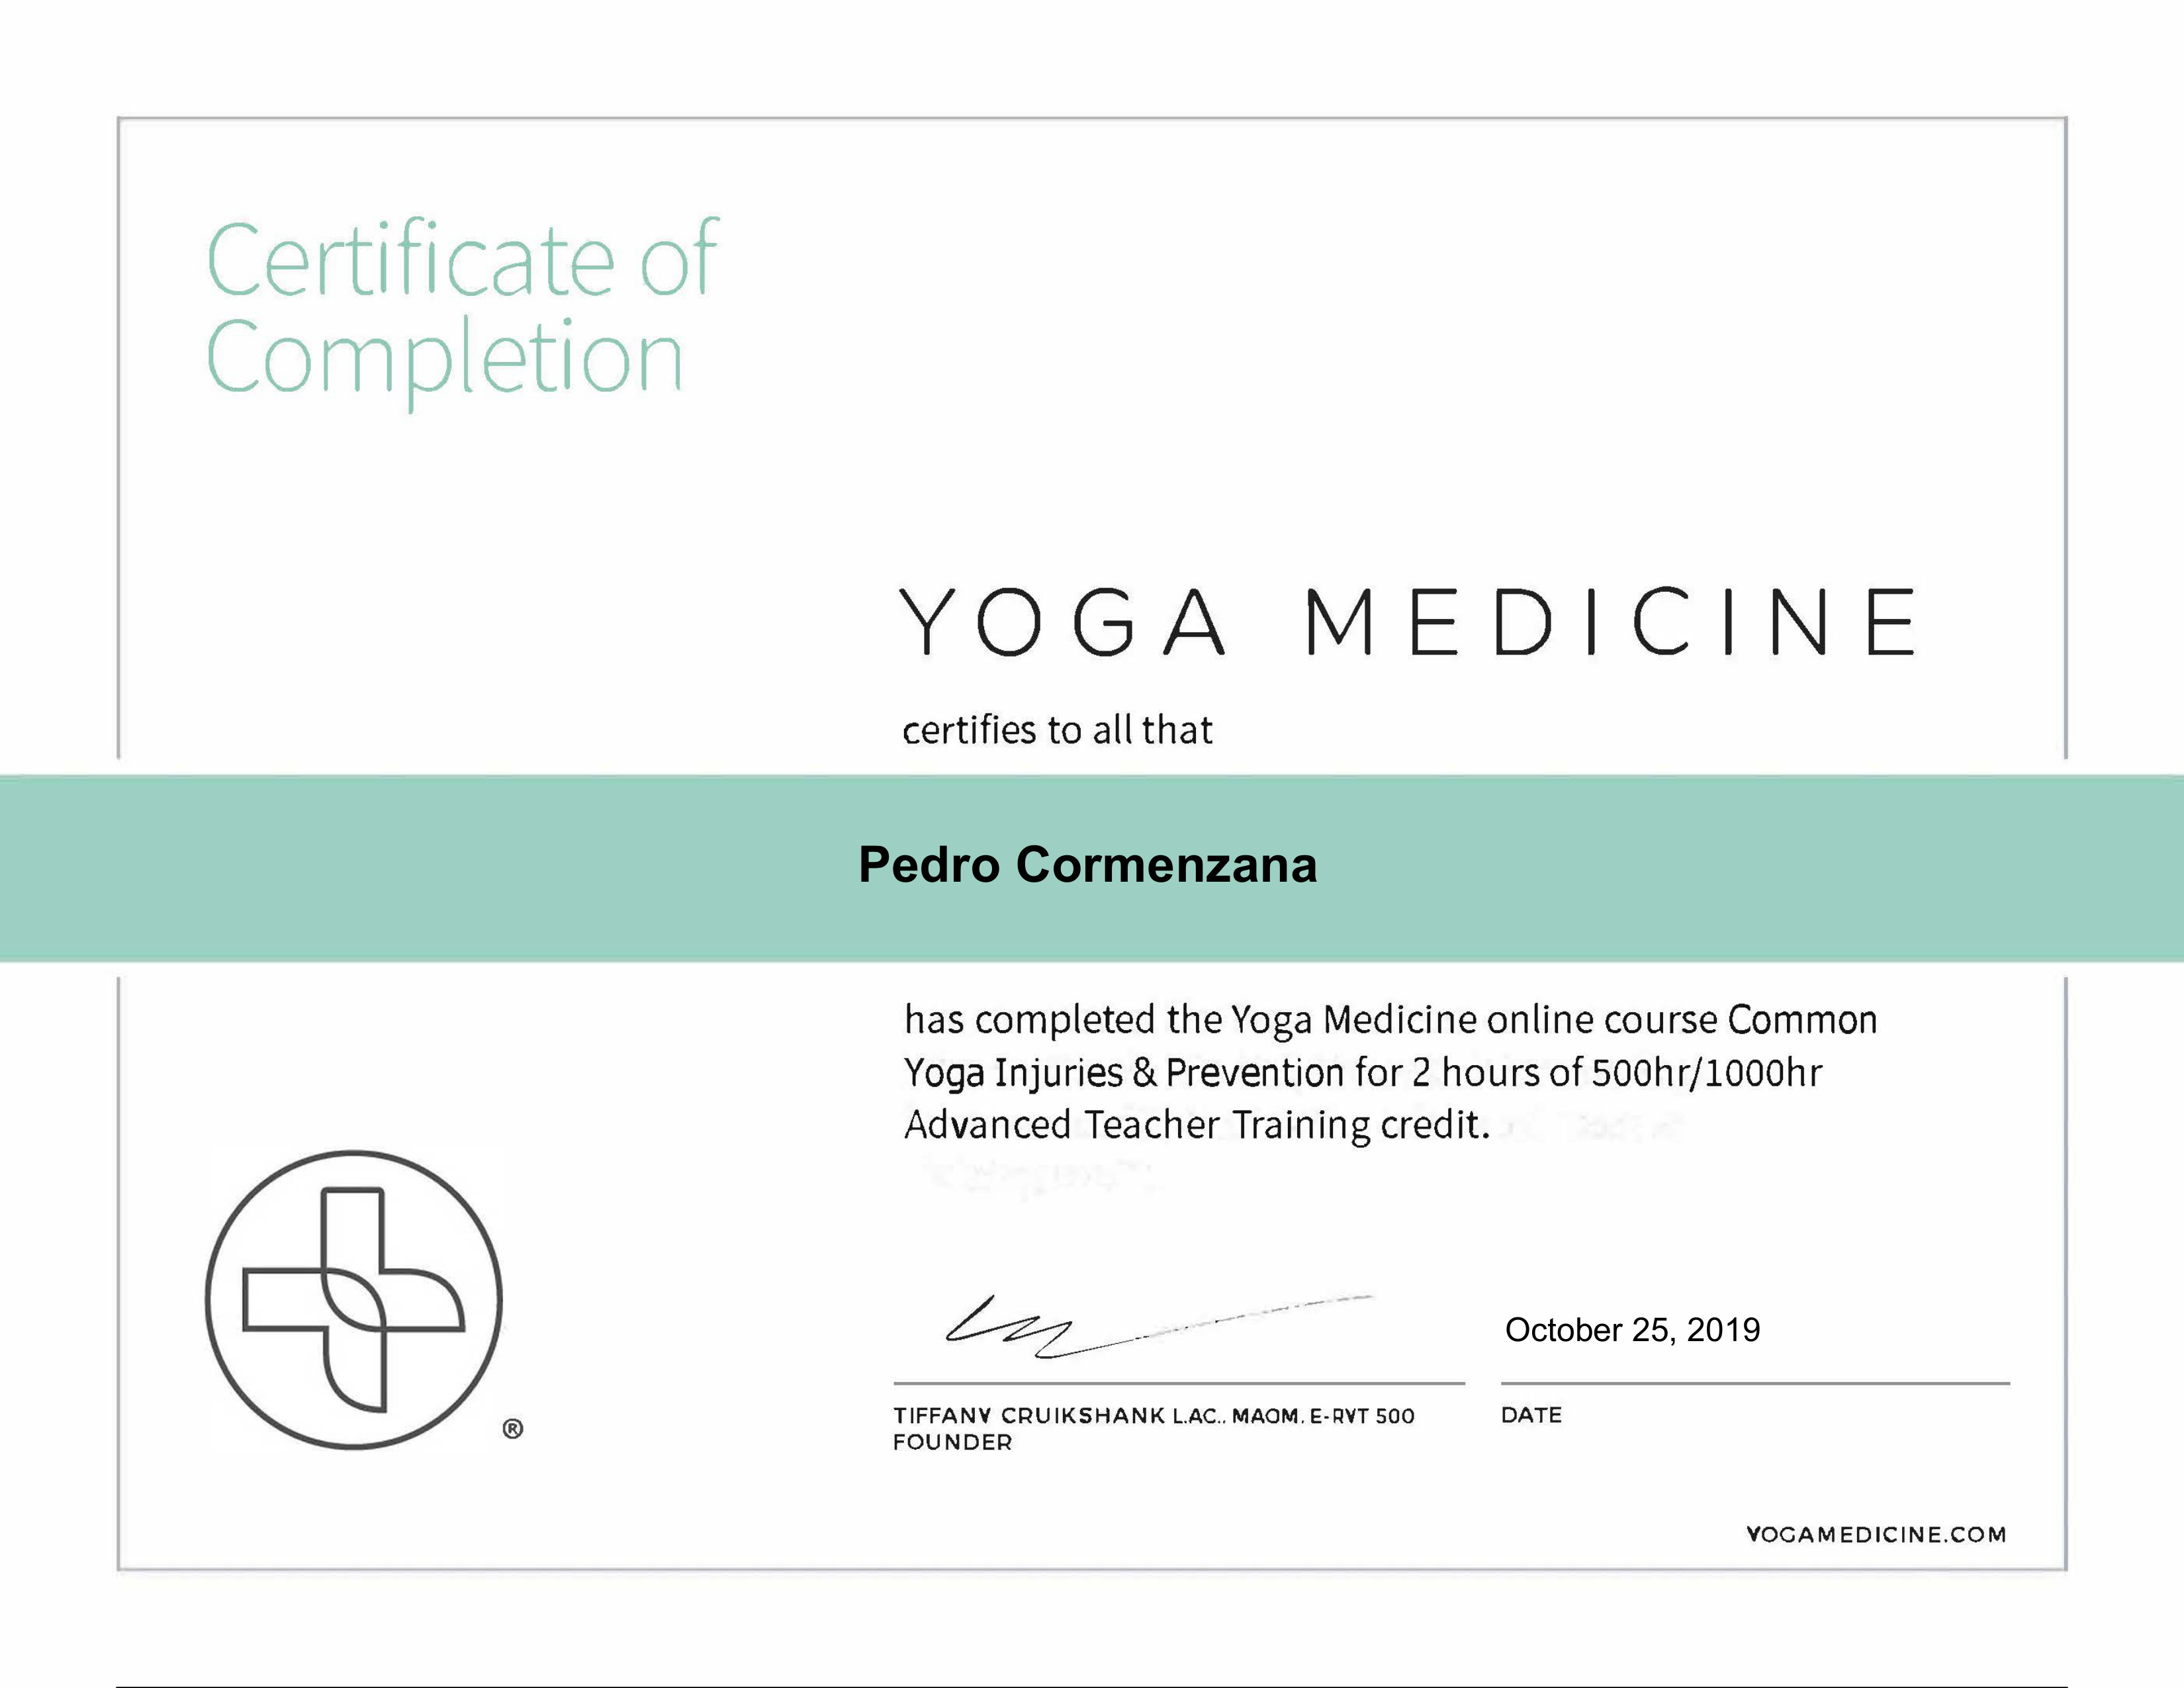 common-yoga-injuries-251019